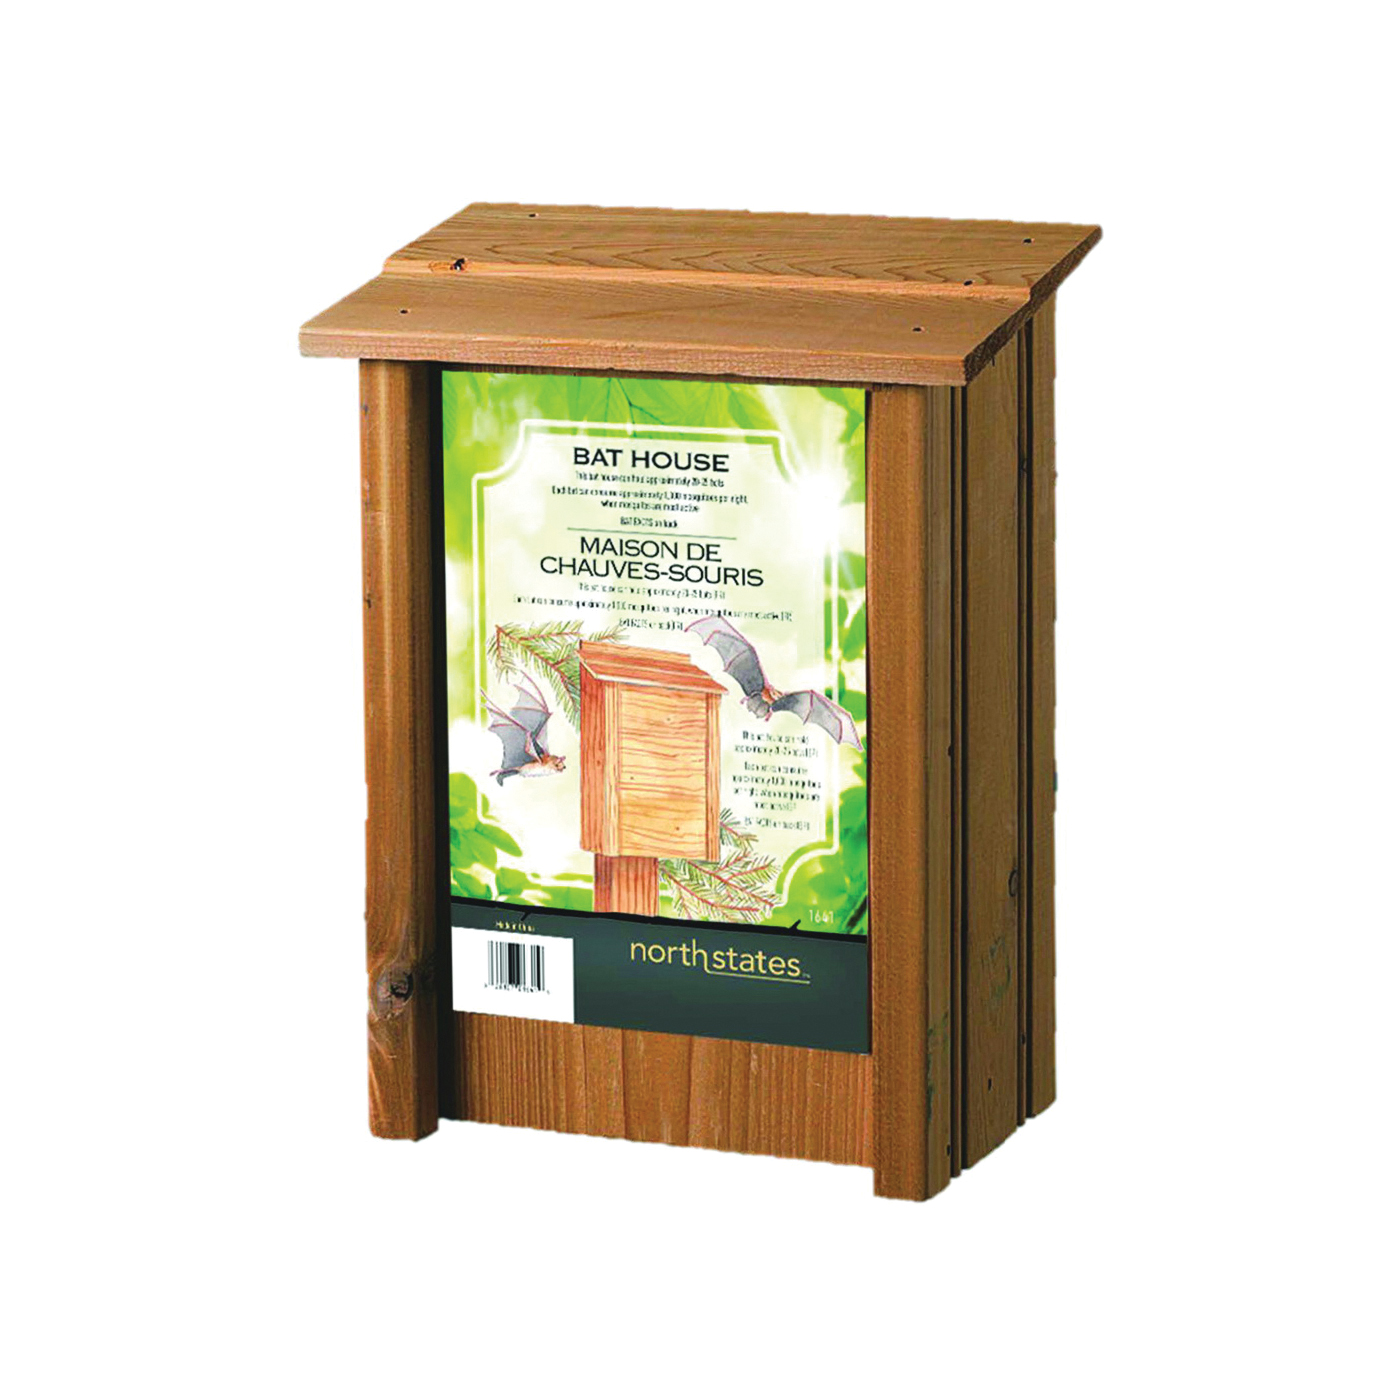 Picture of North States 1641 Bat House, 9 in W, 5-1/4 in D, 12 in H, Cedar Wood, Post, Fence Mounting